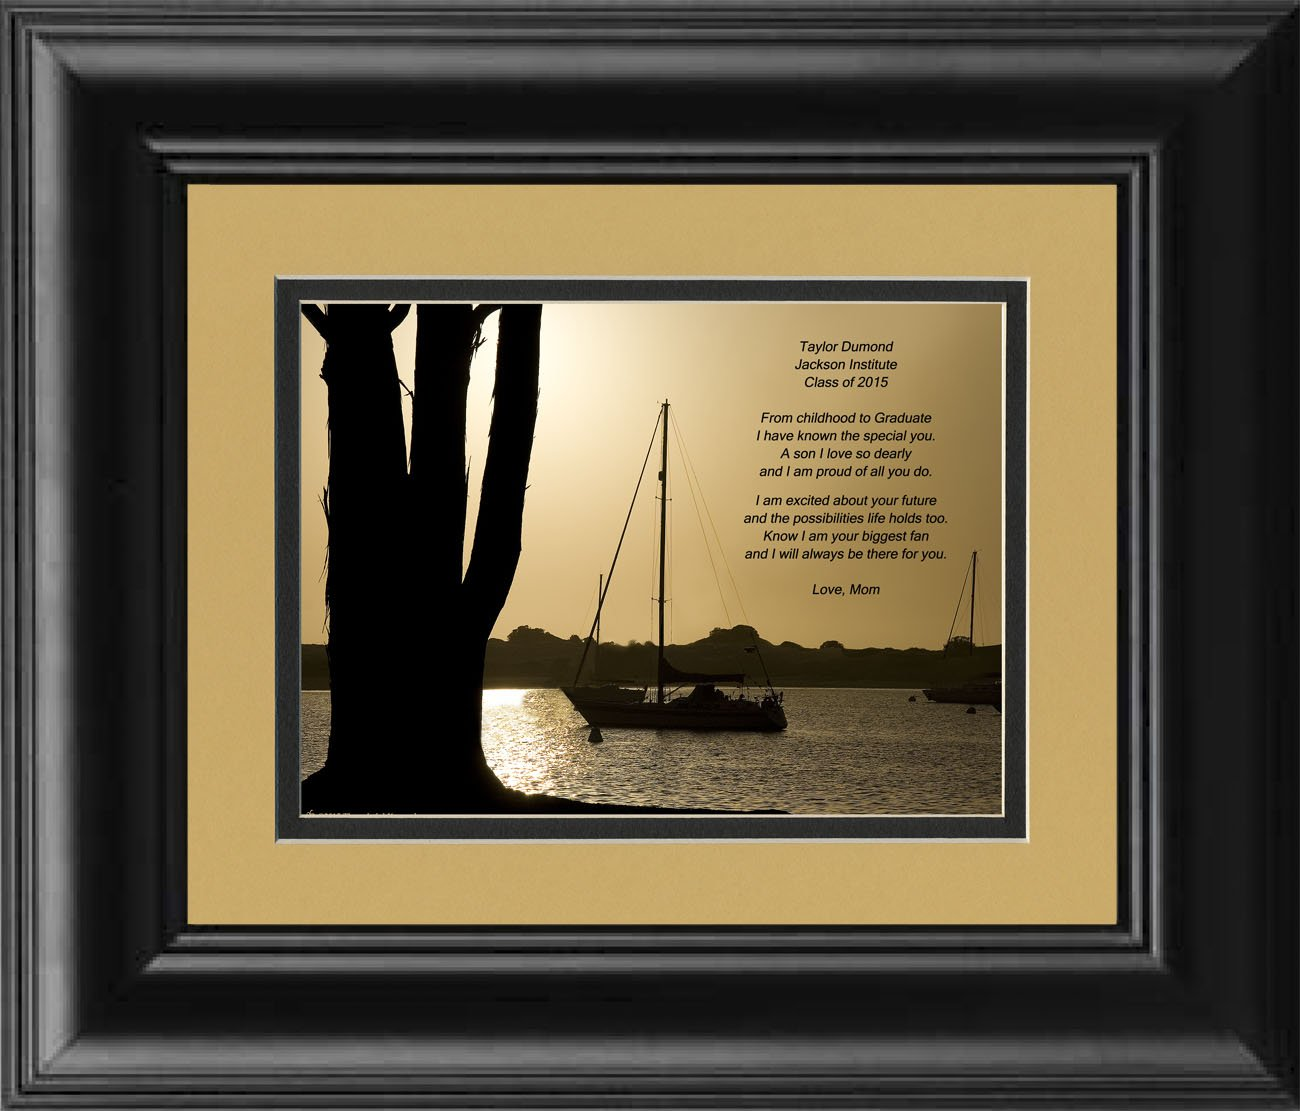 Framed Personalized Son Graduation Gift, Boats at Dusk Photo with ''From Childhood to Graduate'' 8x10 Double Matted. Special Keepsake Graduation Gifts for Son 2017